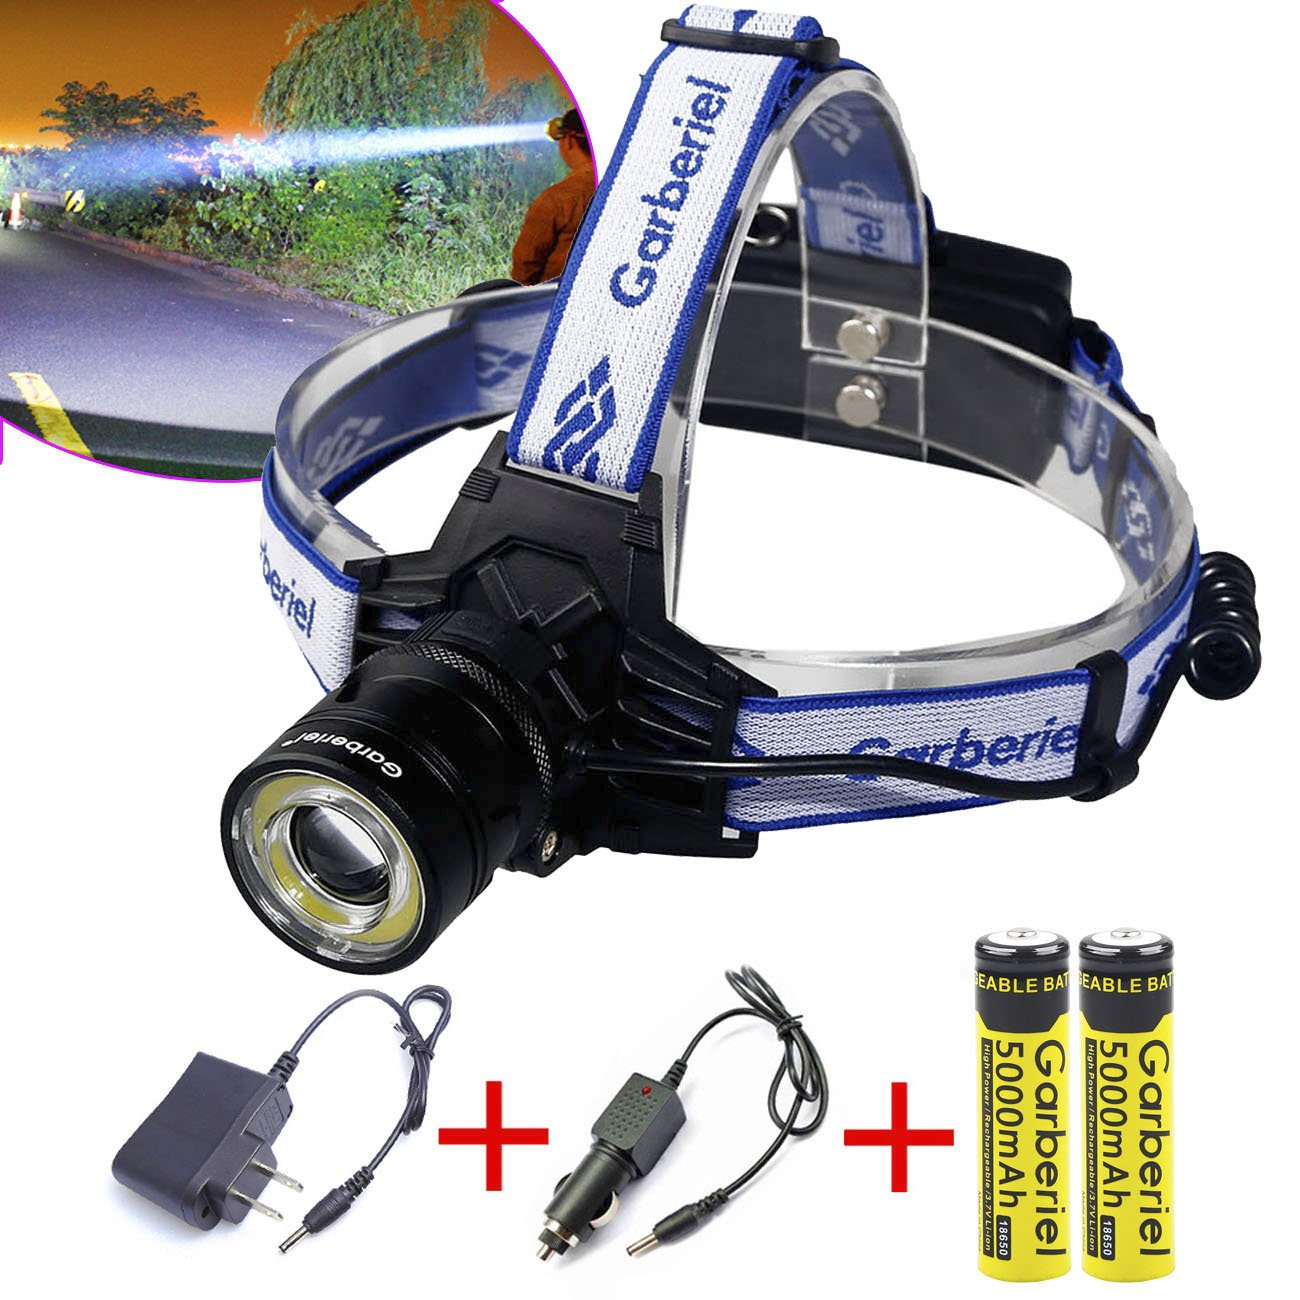 LED Headlamp 2000 Lumens T6 Headlight Zoomable Waterproof Tactical Light Lamp for Camping Hiking Running Batteries and Charger Include WishDeal